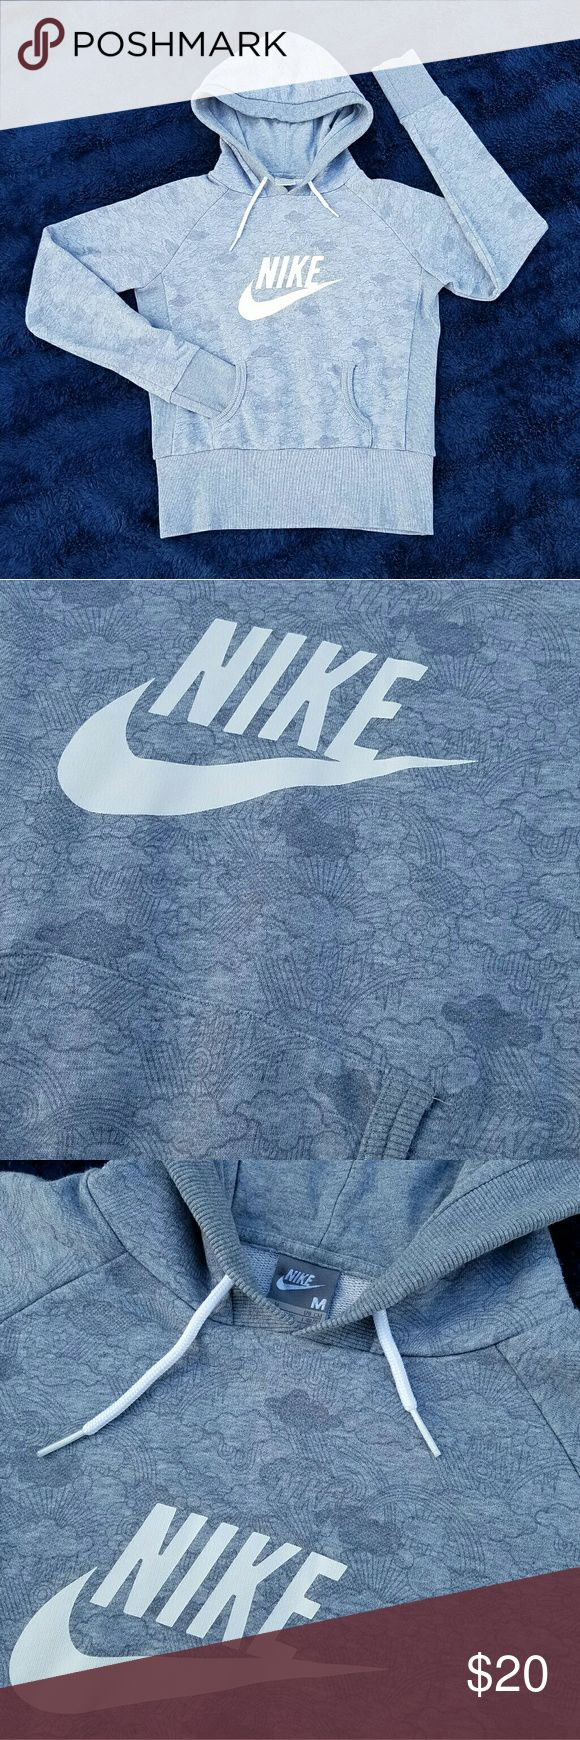 """Nike hoodie Grey Nike hoodie. There is a subtle but darker grey colored print of rainbows, clouds, sunshine, stars and """"NIKE"""" in the fabric. Nike Tops Sweatshirts & Hoodies"""